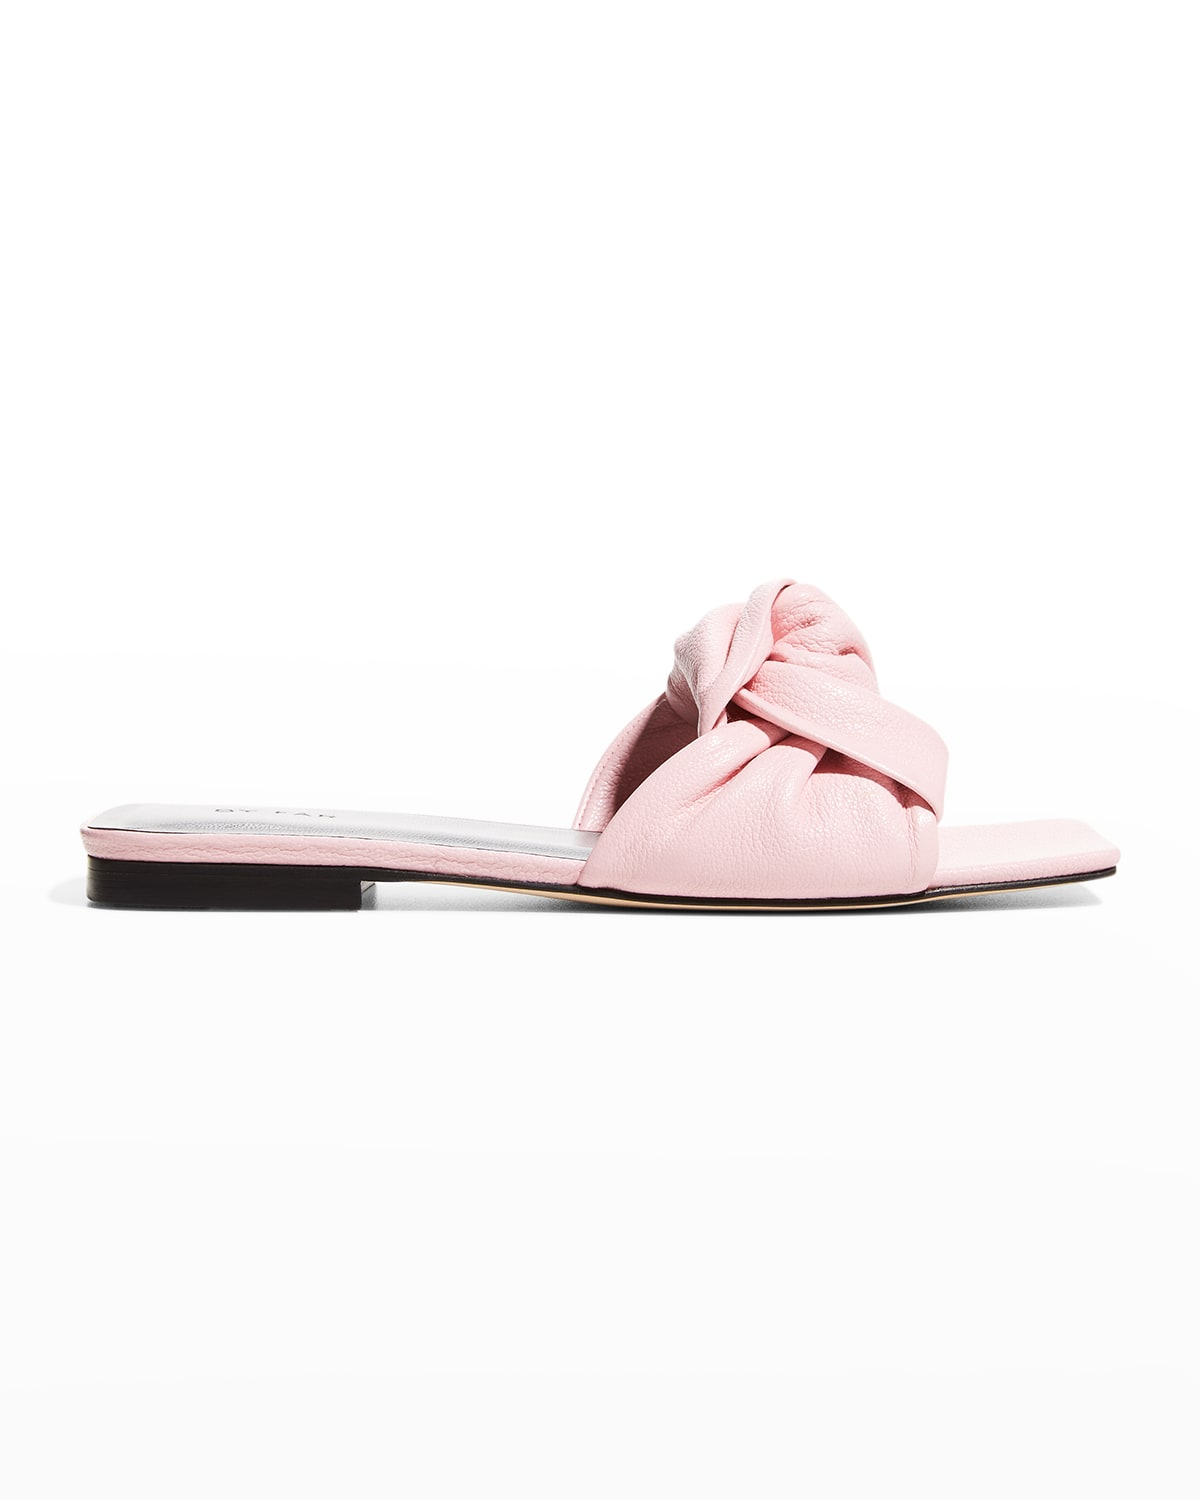 Lima Knotted Leather Slide Sandals